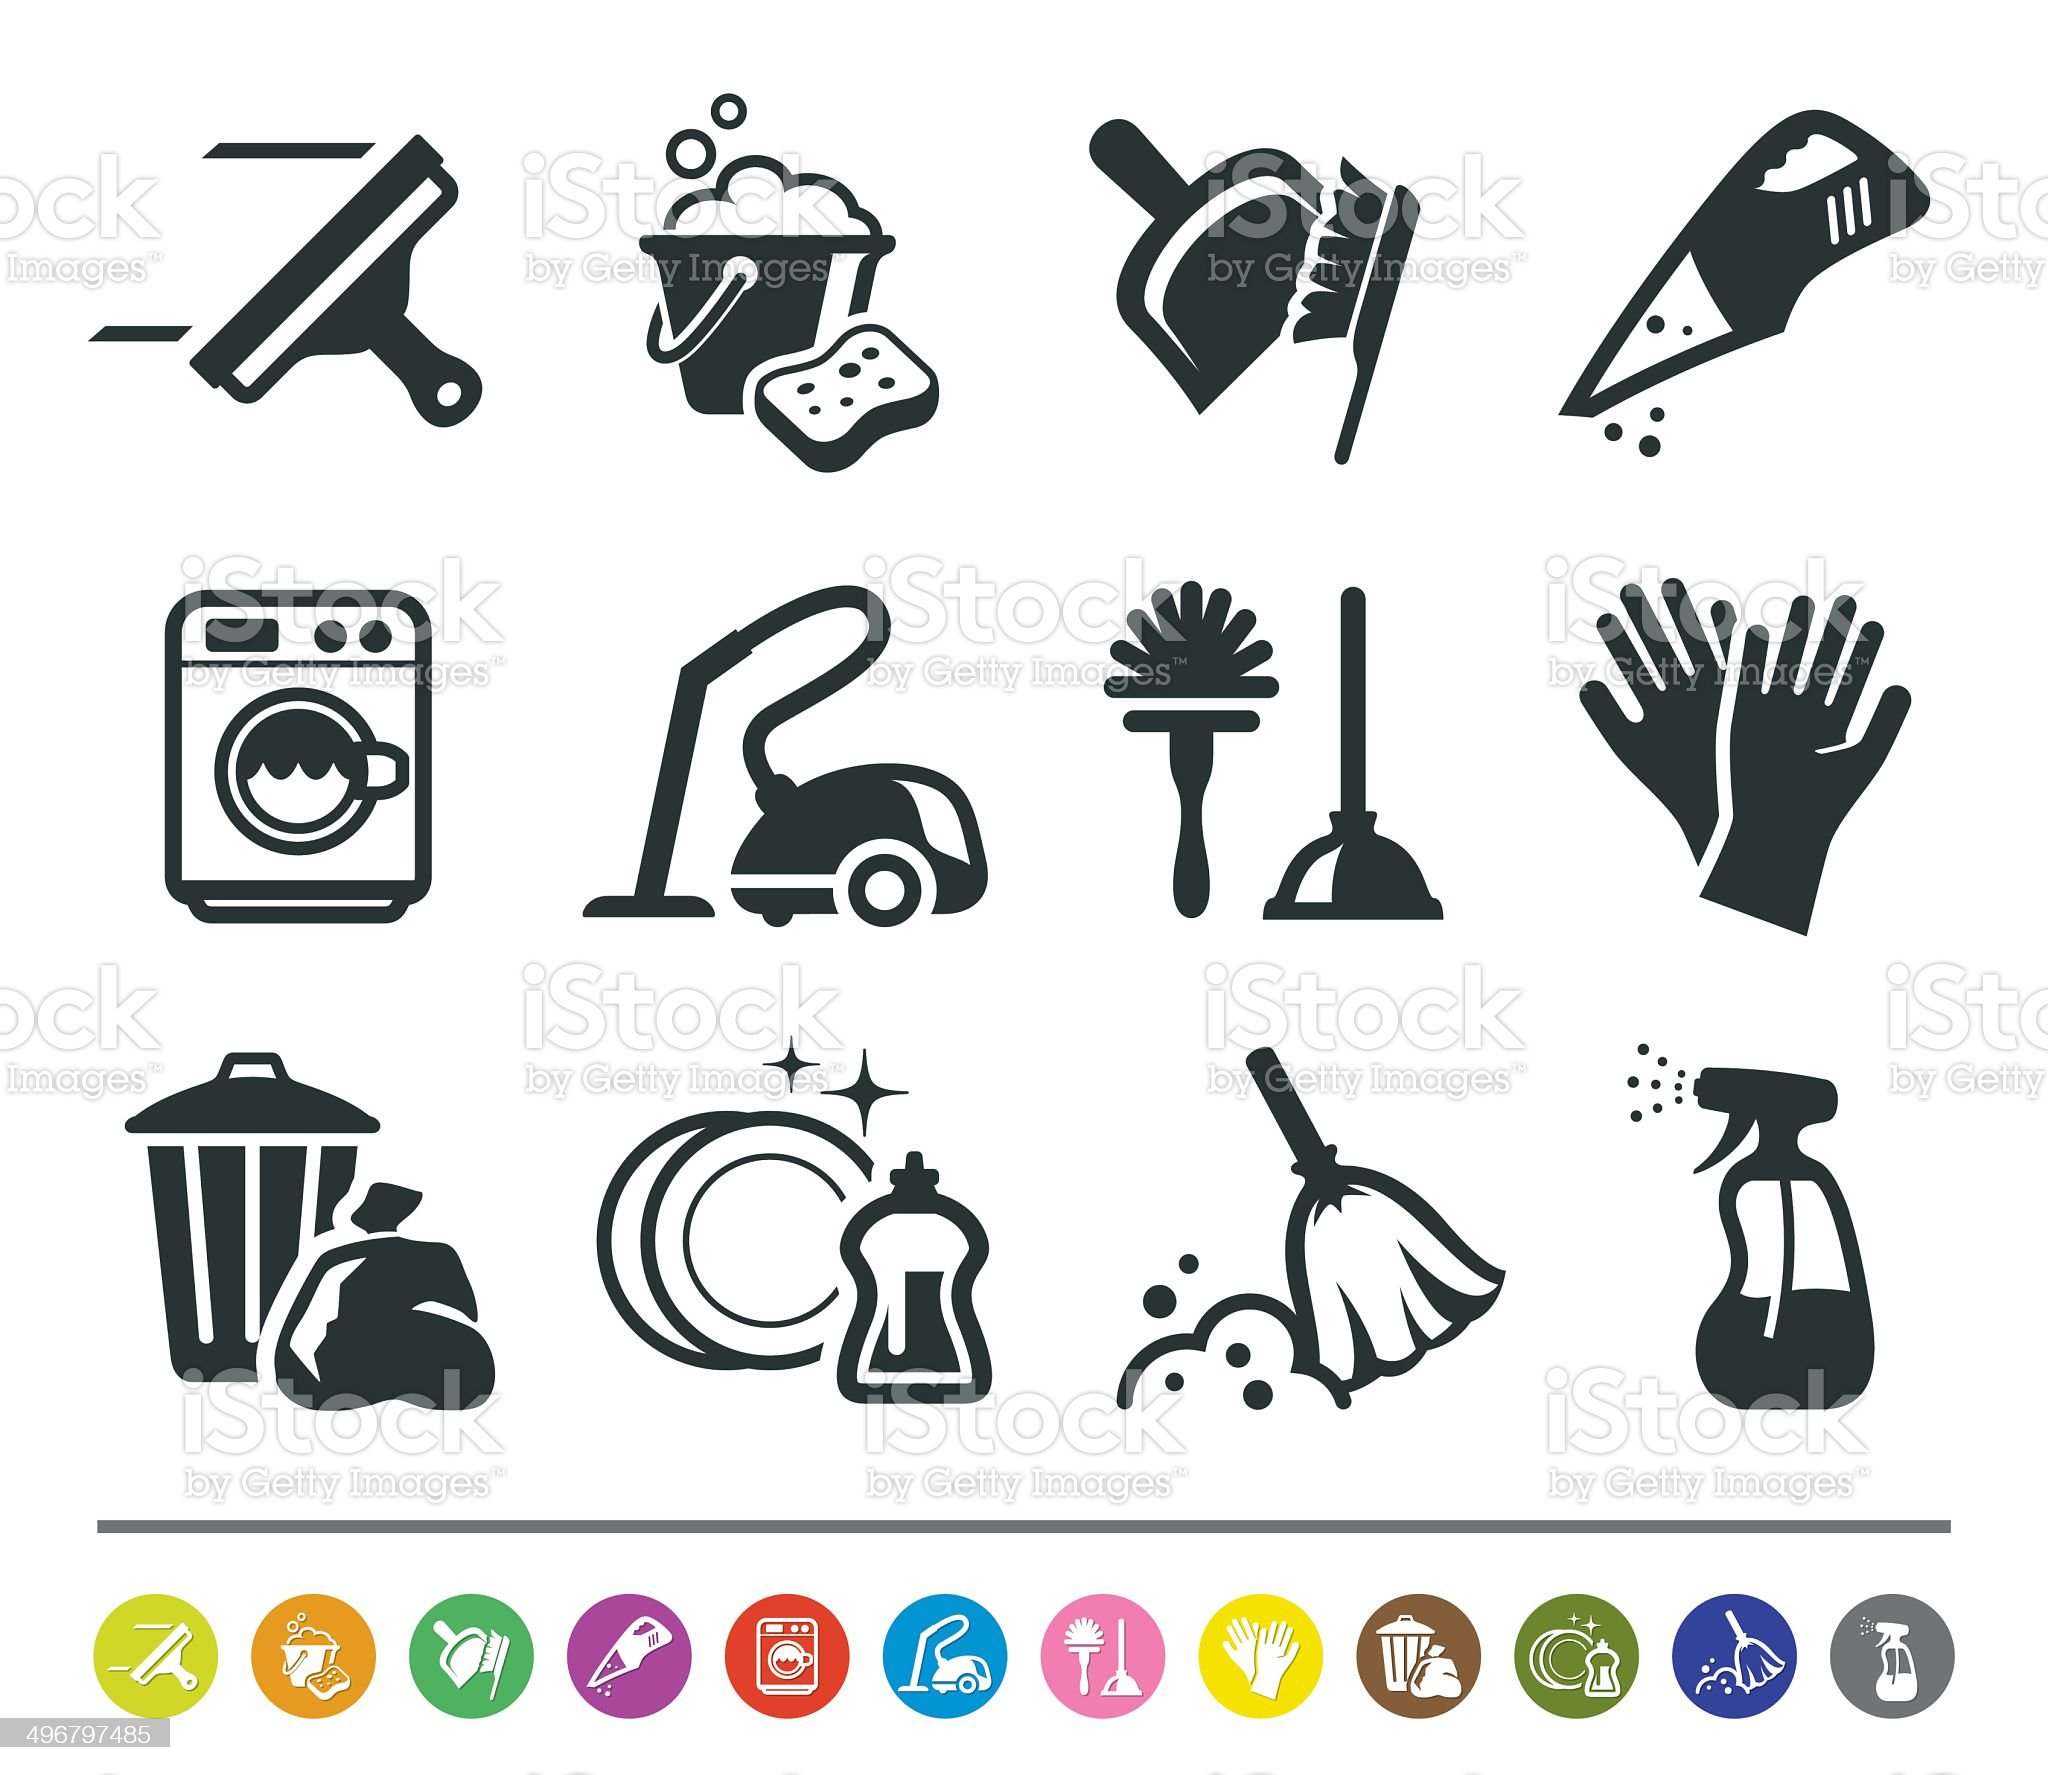 Cleaning icons   siprocon collection royalty-free stock vector art